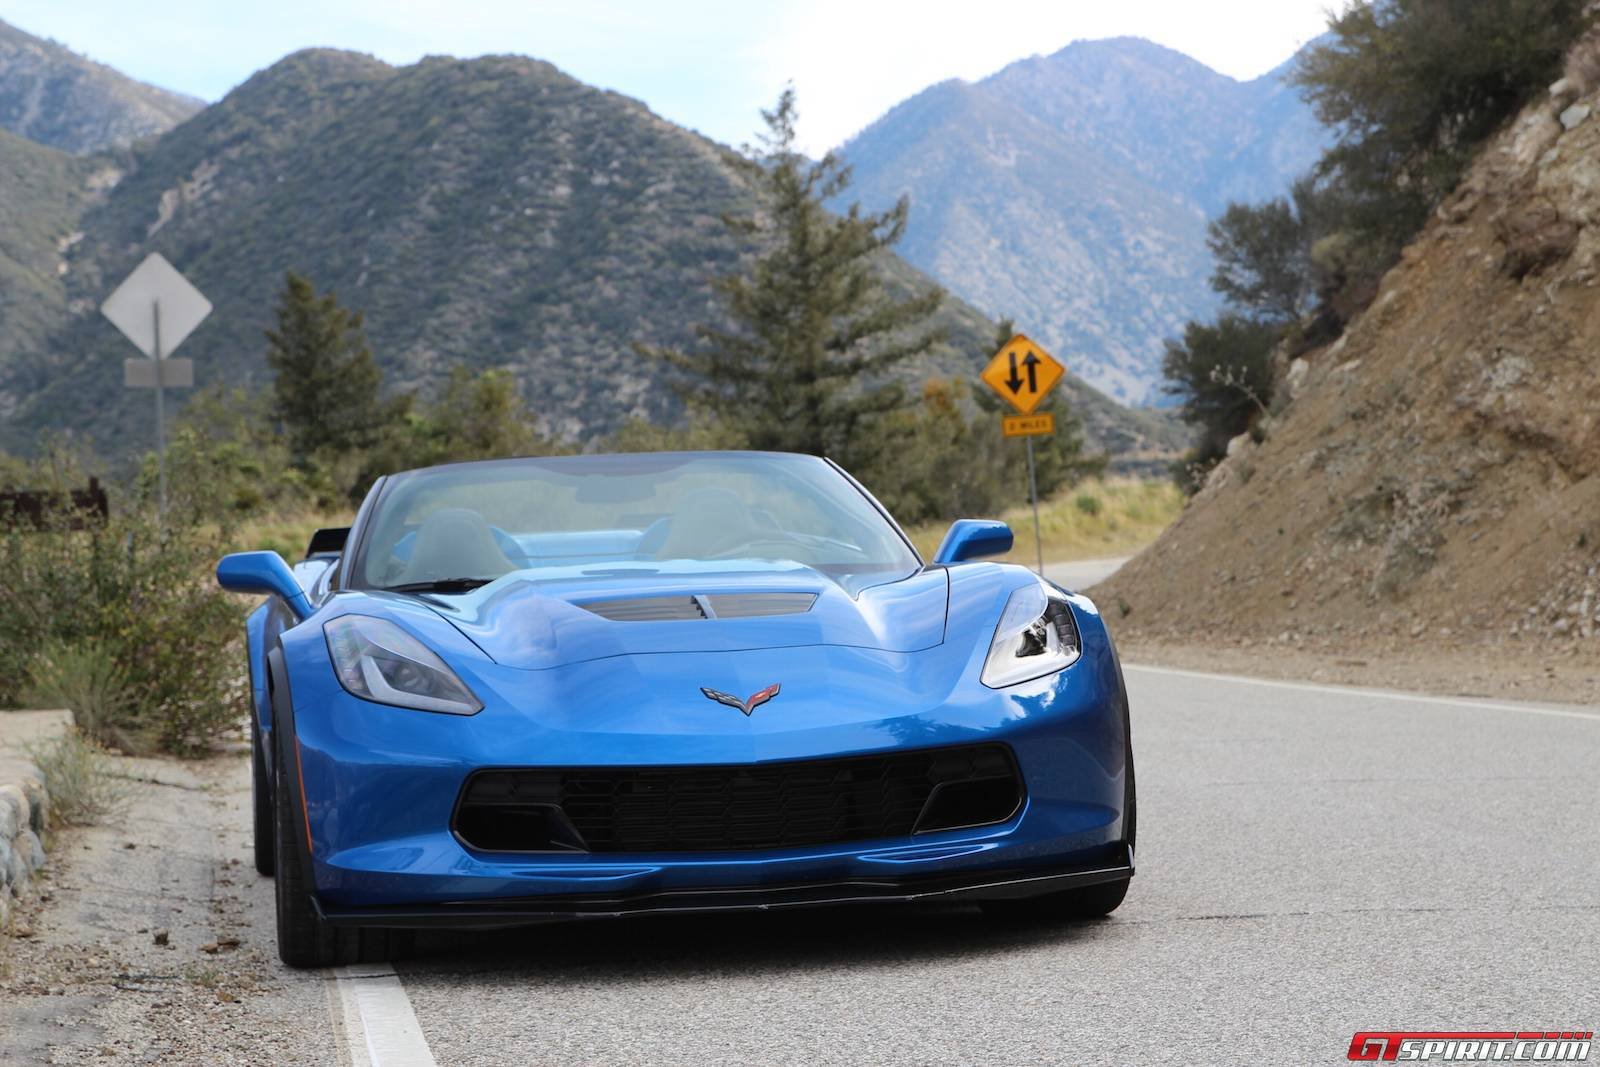 2019 Chevrolet Corvette Z06 Convertible photo - 4